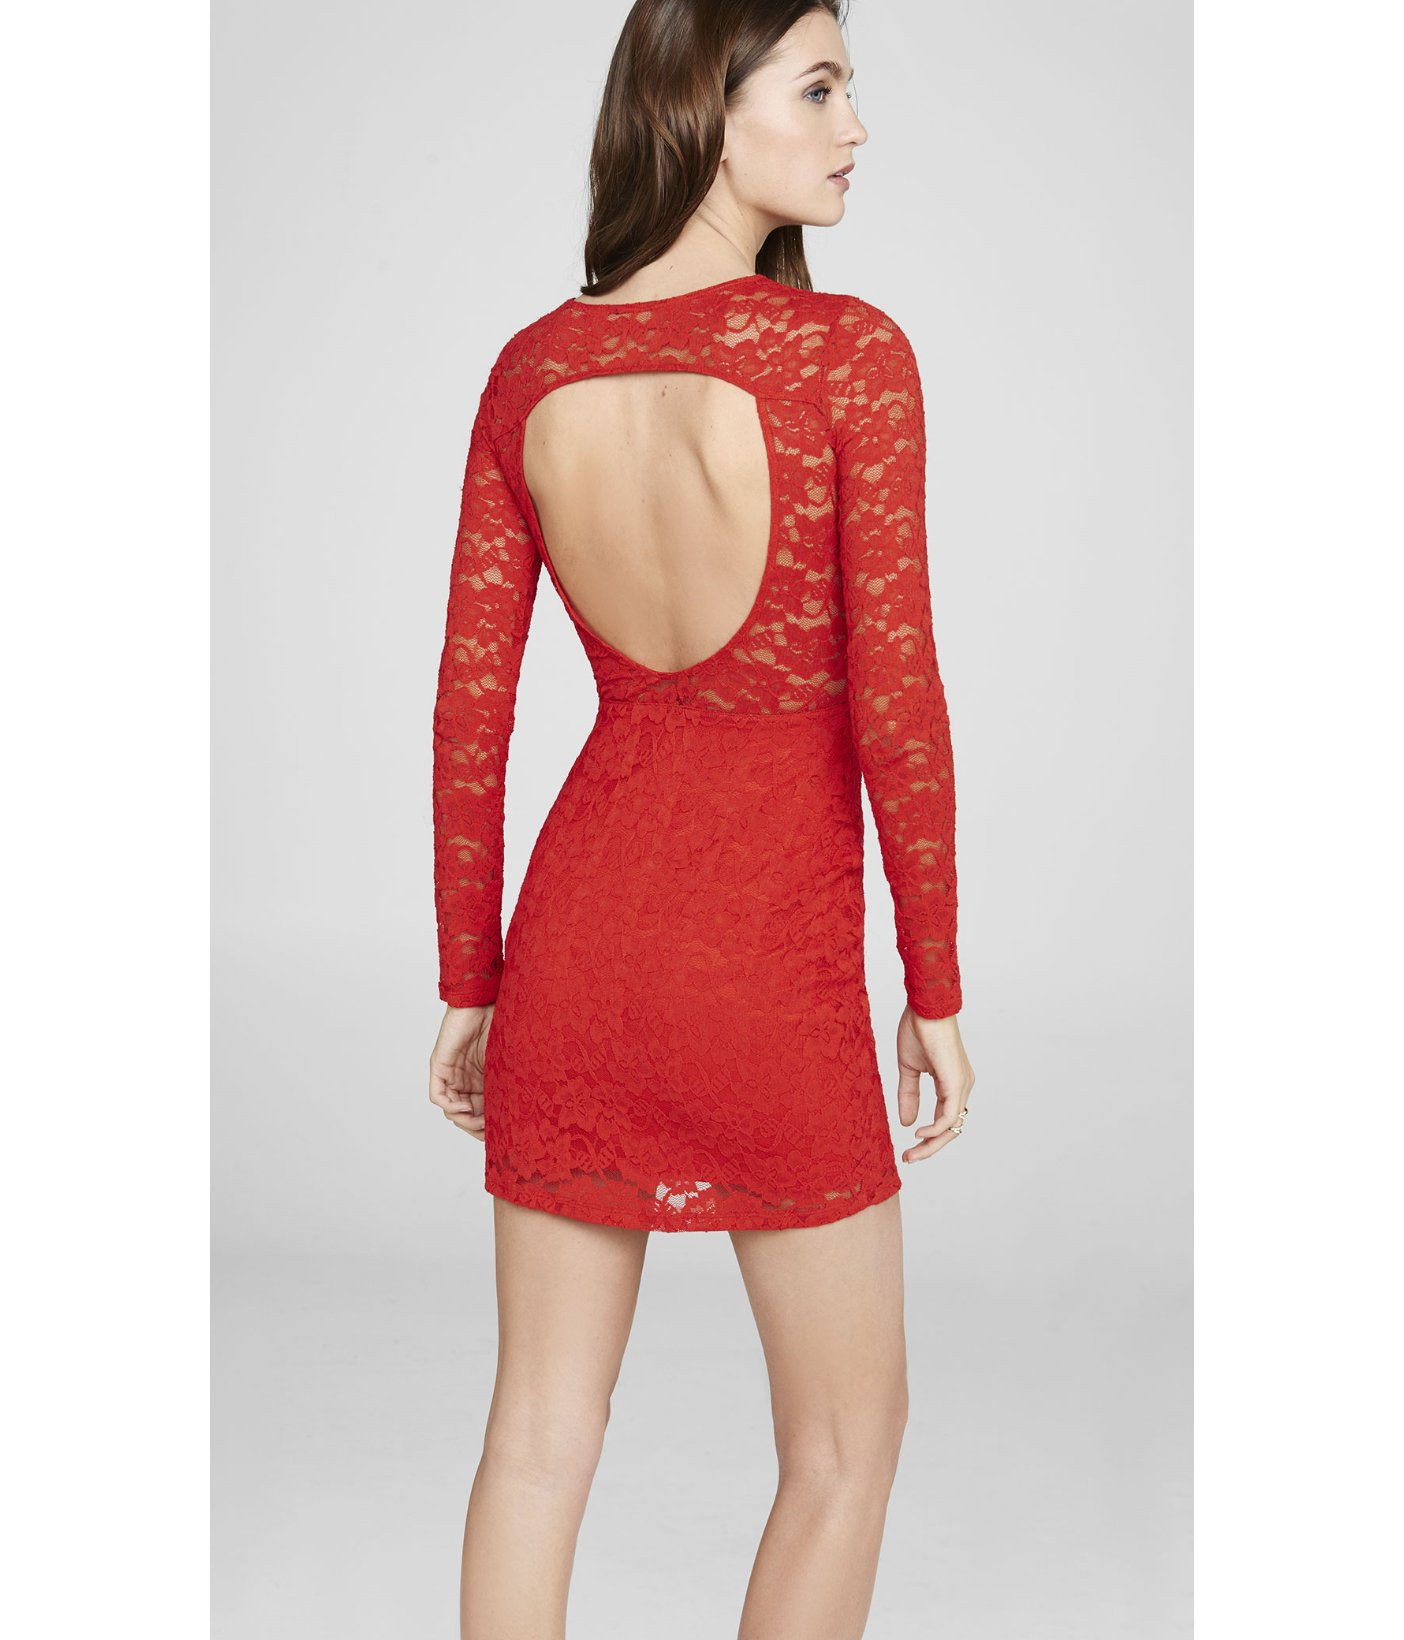 Express Red Lace Open Back Dress in Red | Lyst